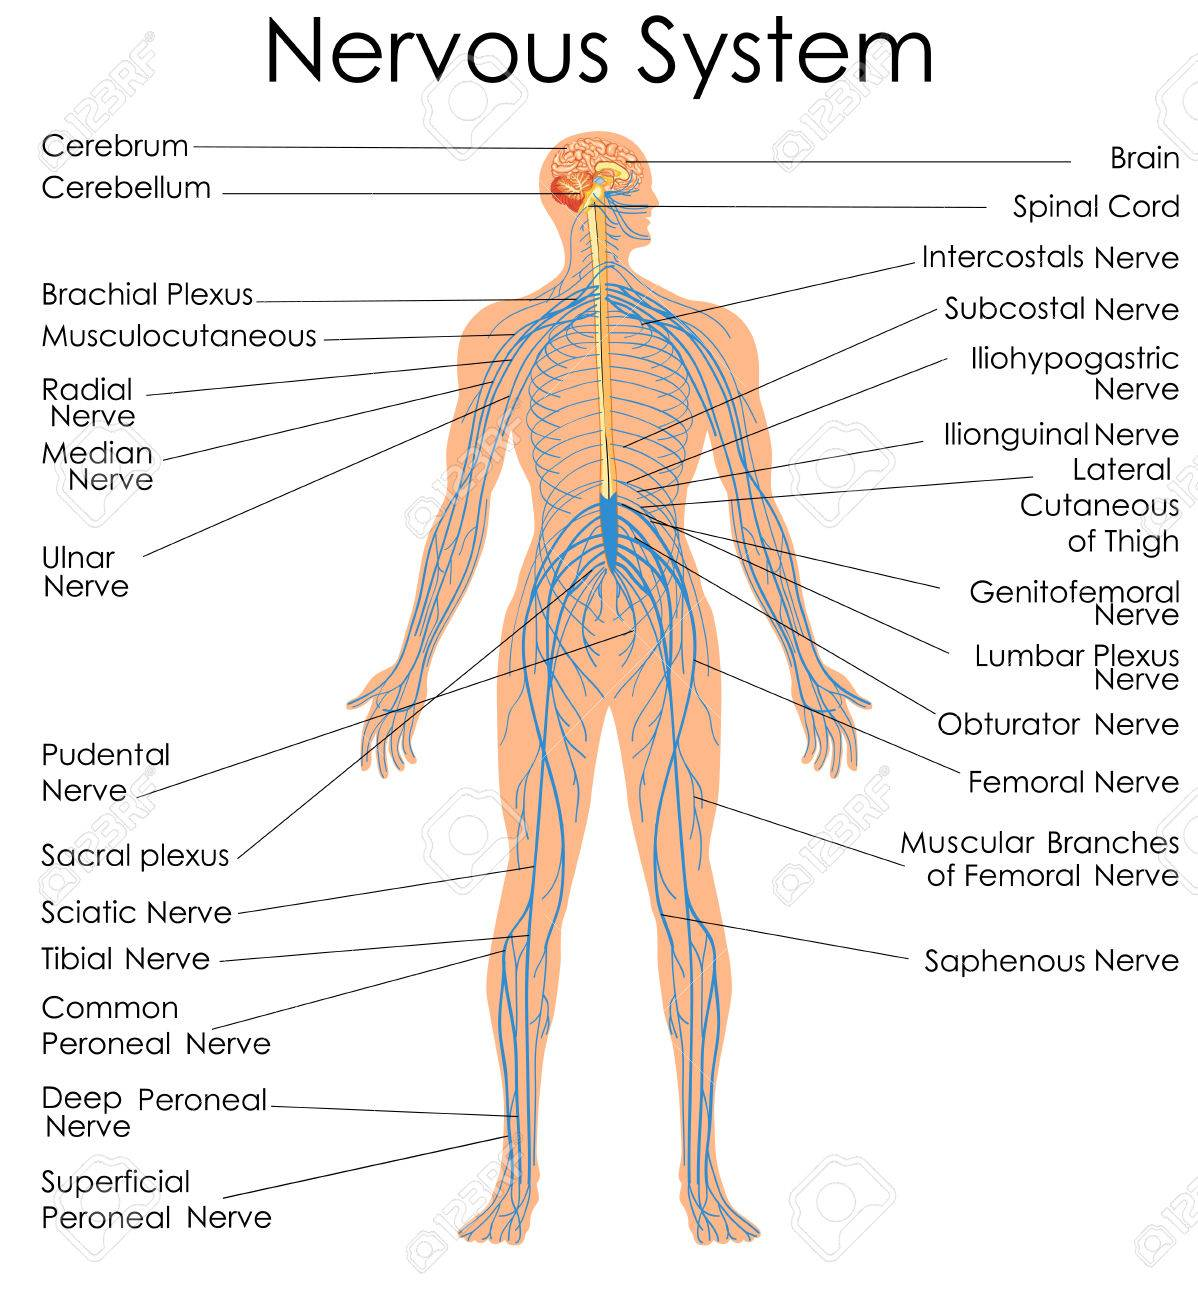 medical education chart of biology for nervous system diagram